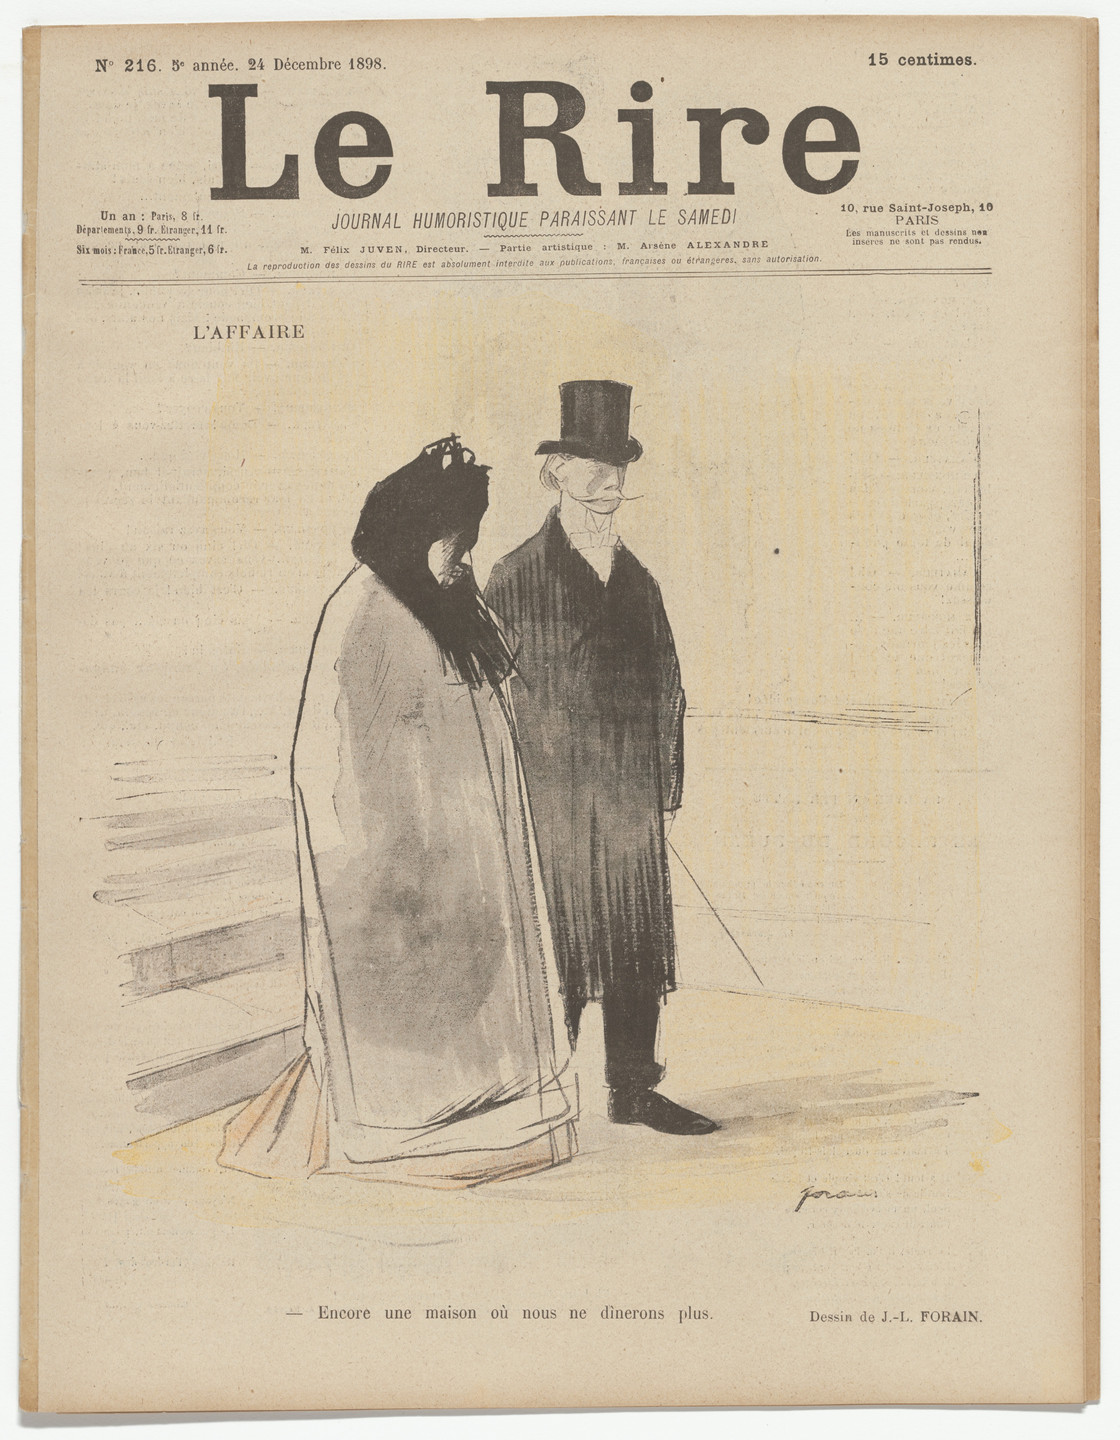 Jean-Louis Forain. The Affair (L'Affaire) from Laughter (Le Rire). December 24, 1898.